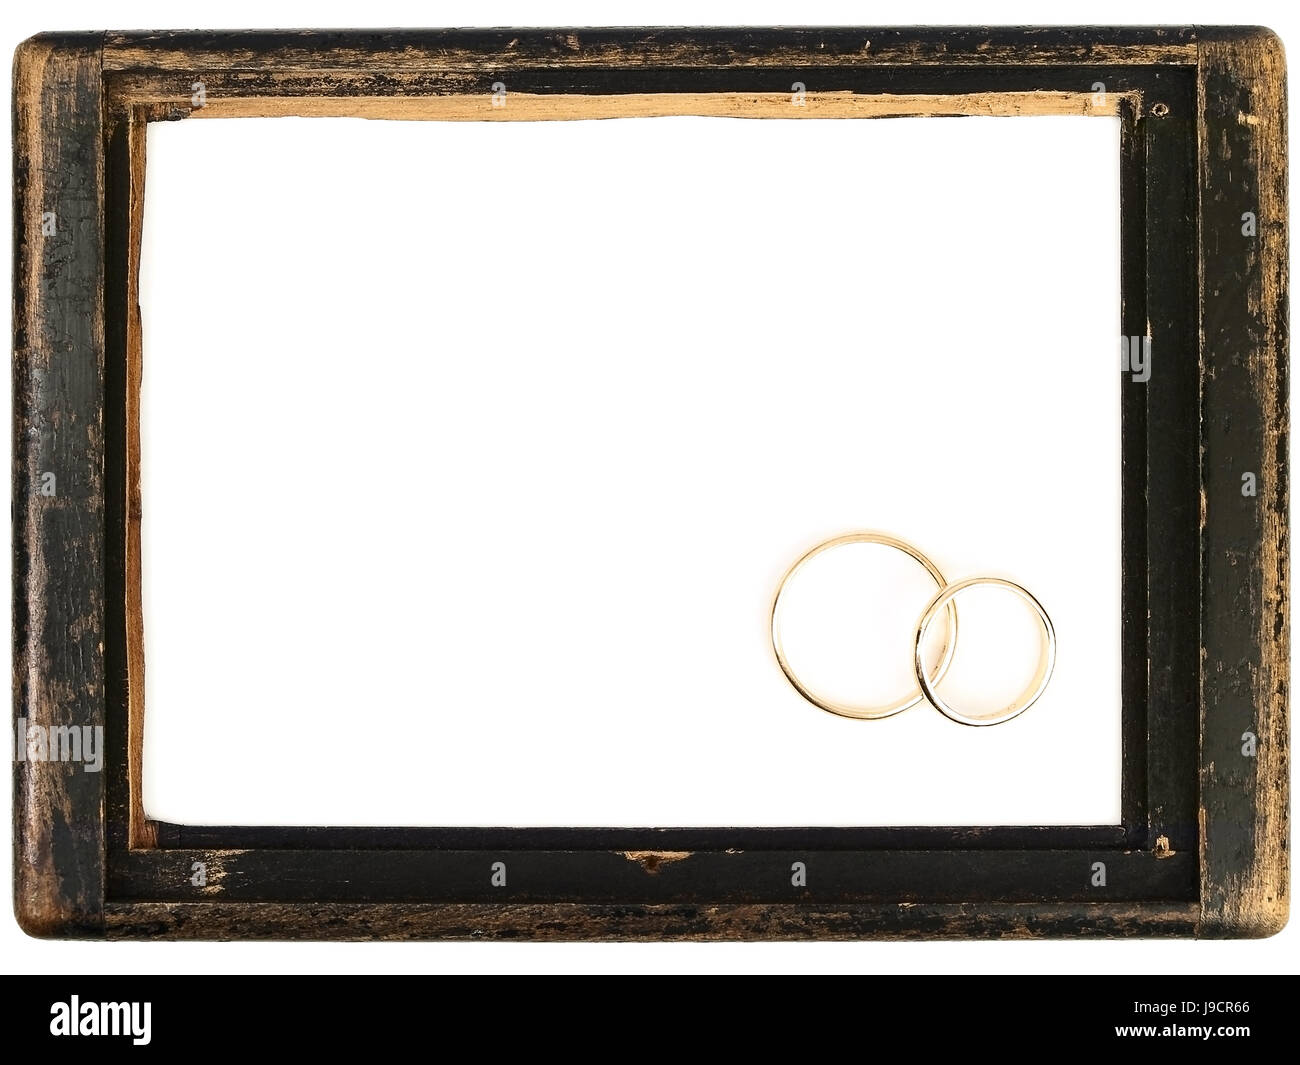 Frame Gold Ring Stockfotos & Frame Gold Ring Bilder - Alamy